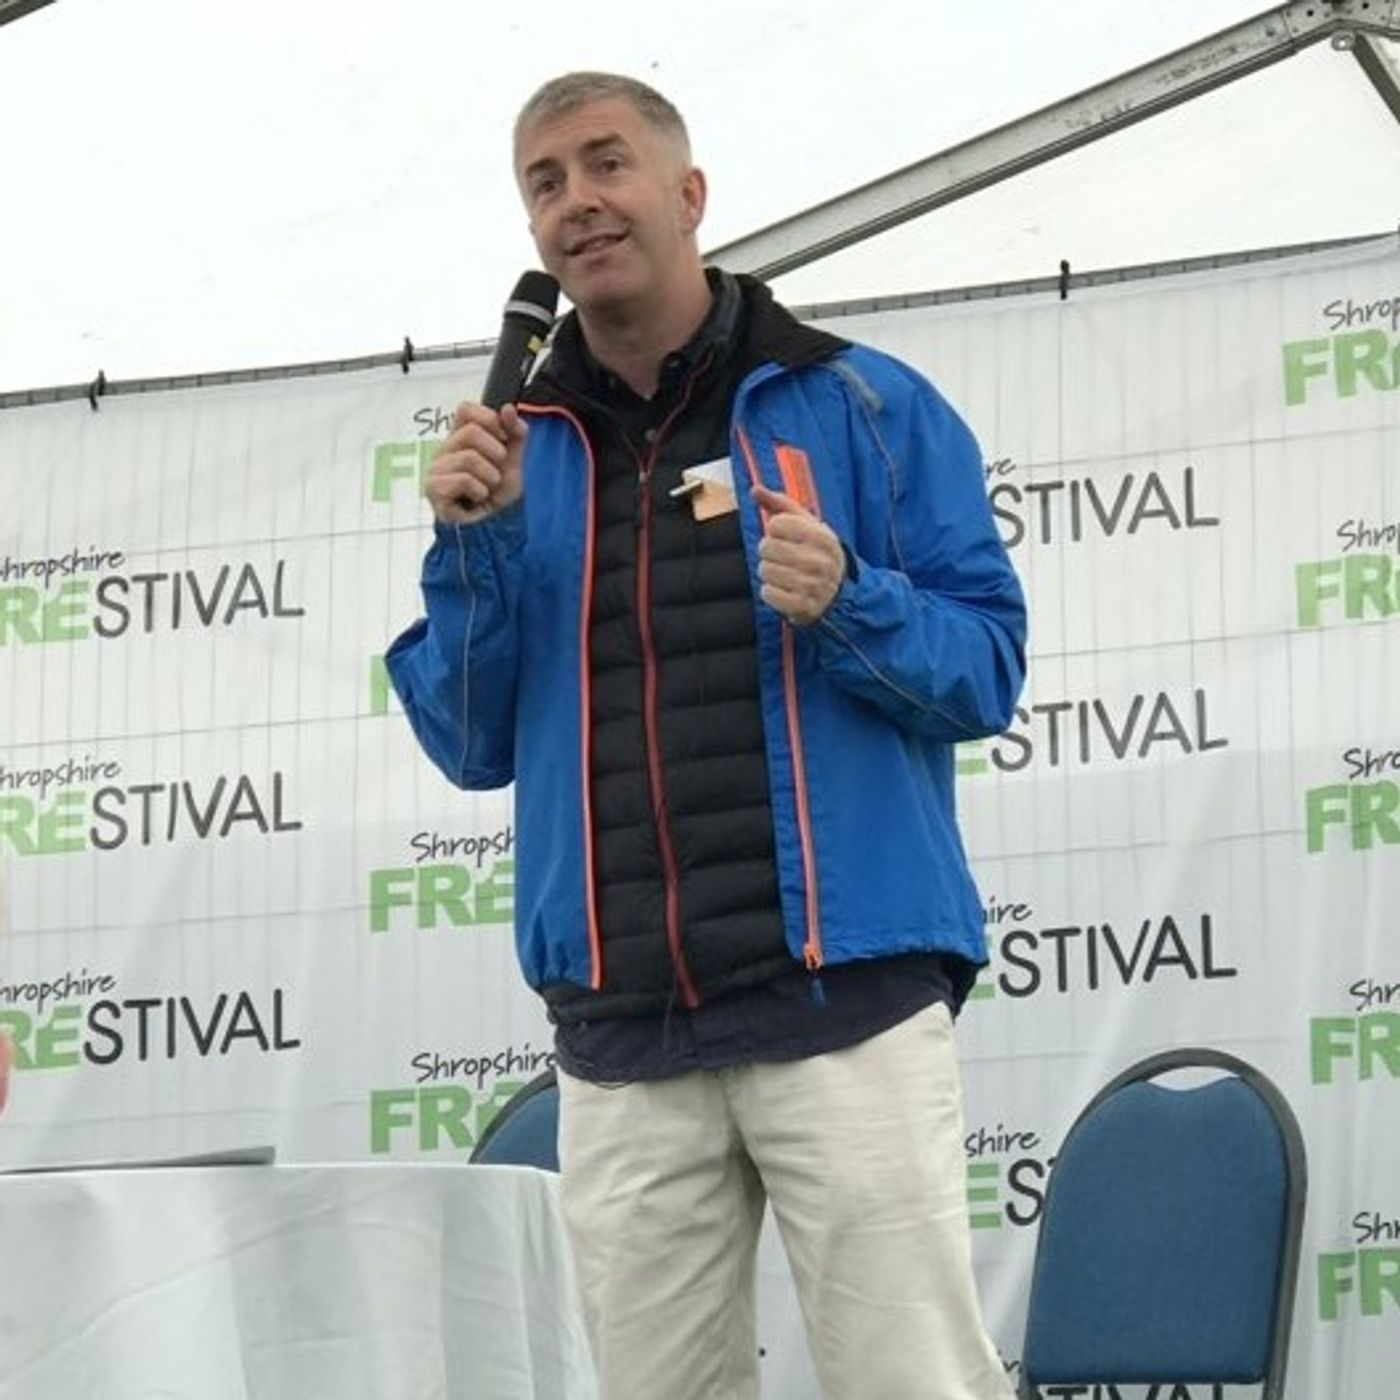 My Talk on Allergies and Epigenetics at Shropshire Frestival May 2019